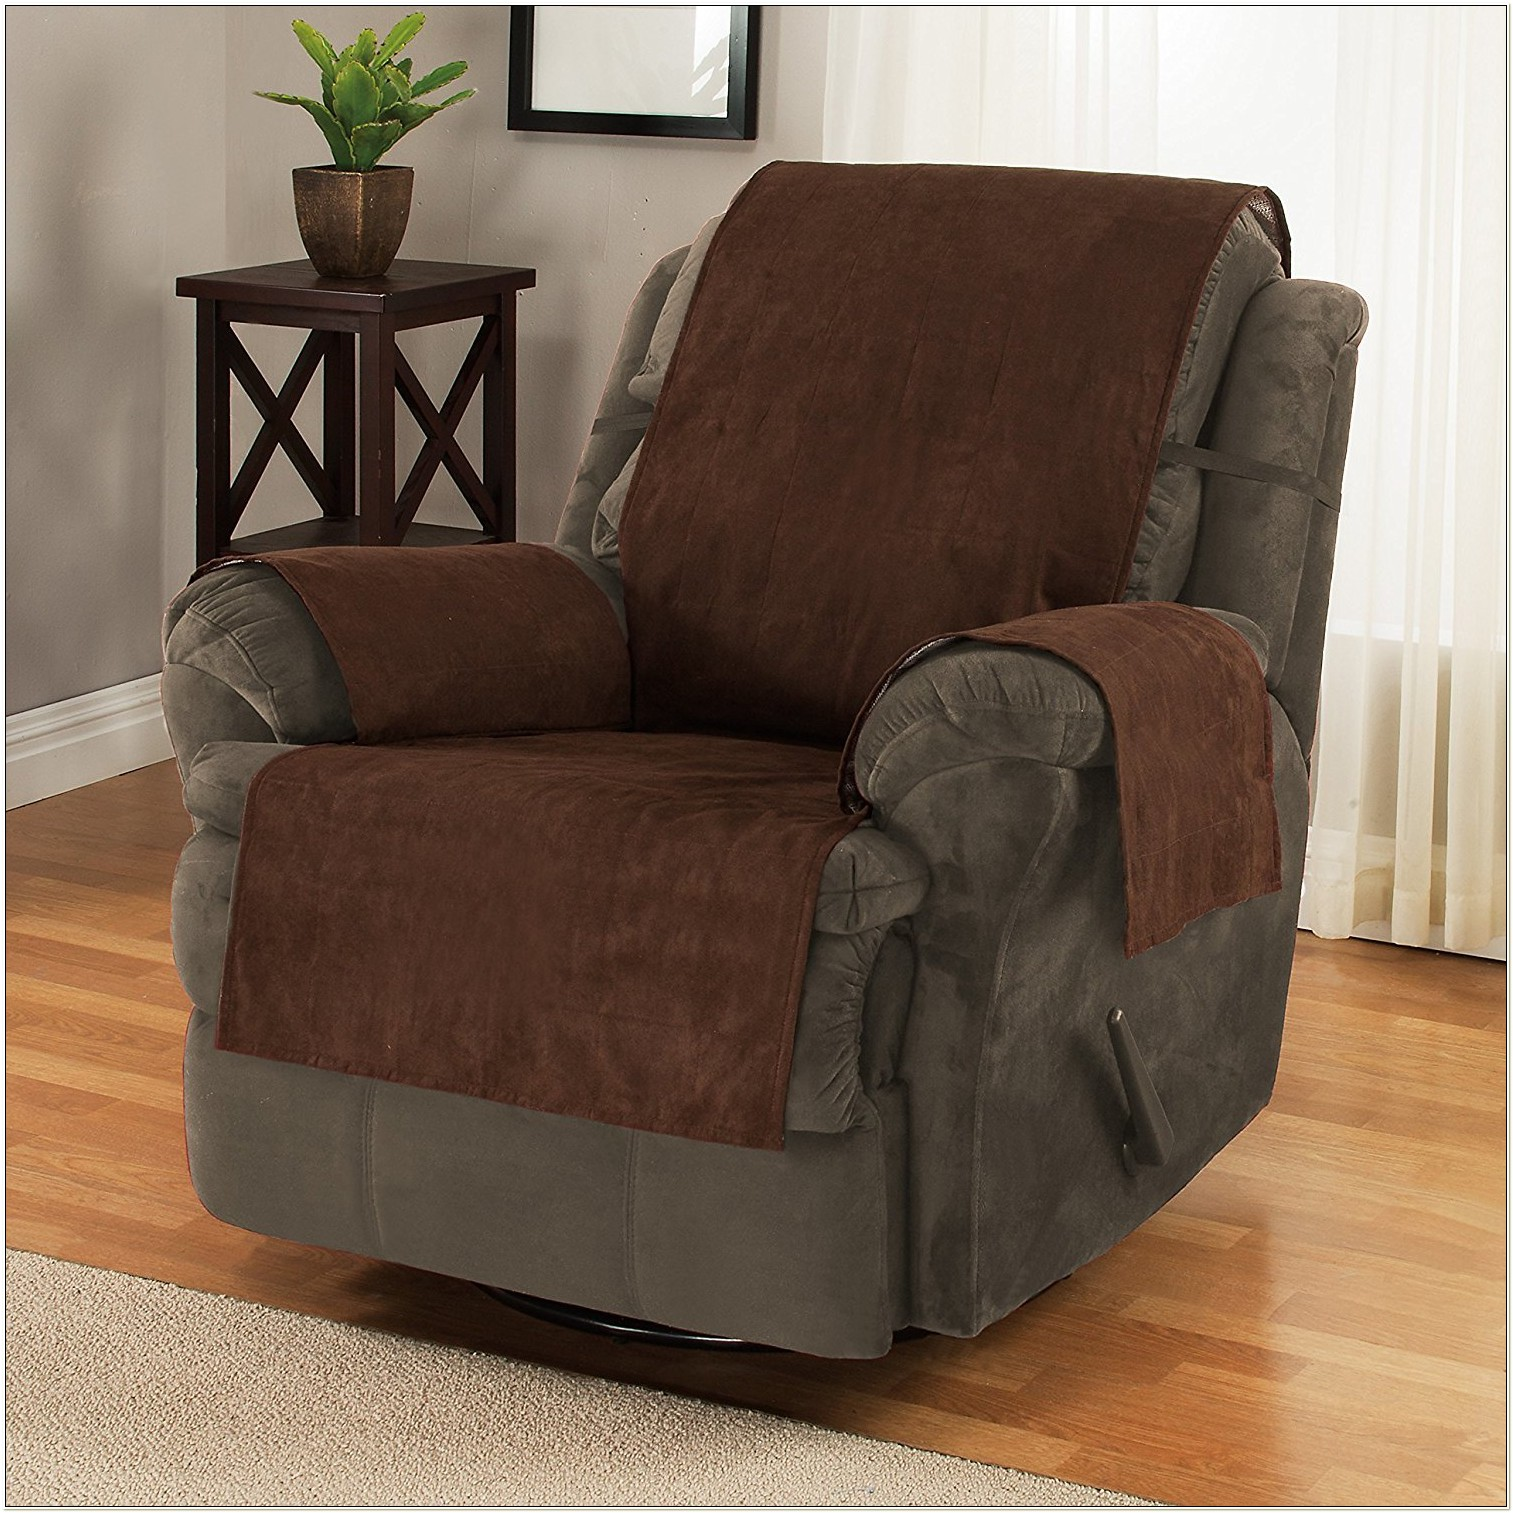 Loose Covers For Recliner Chairs